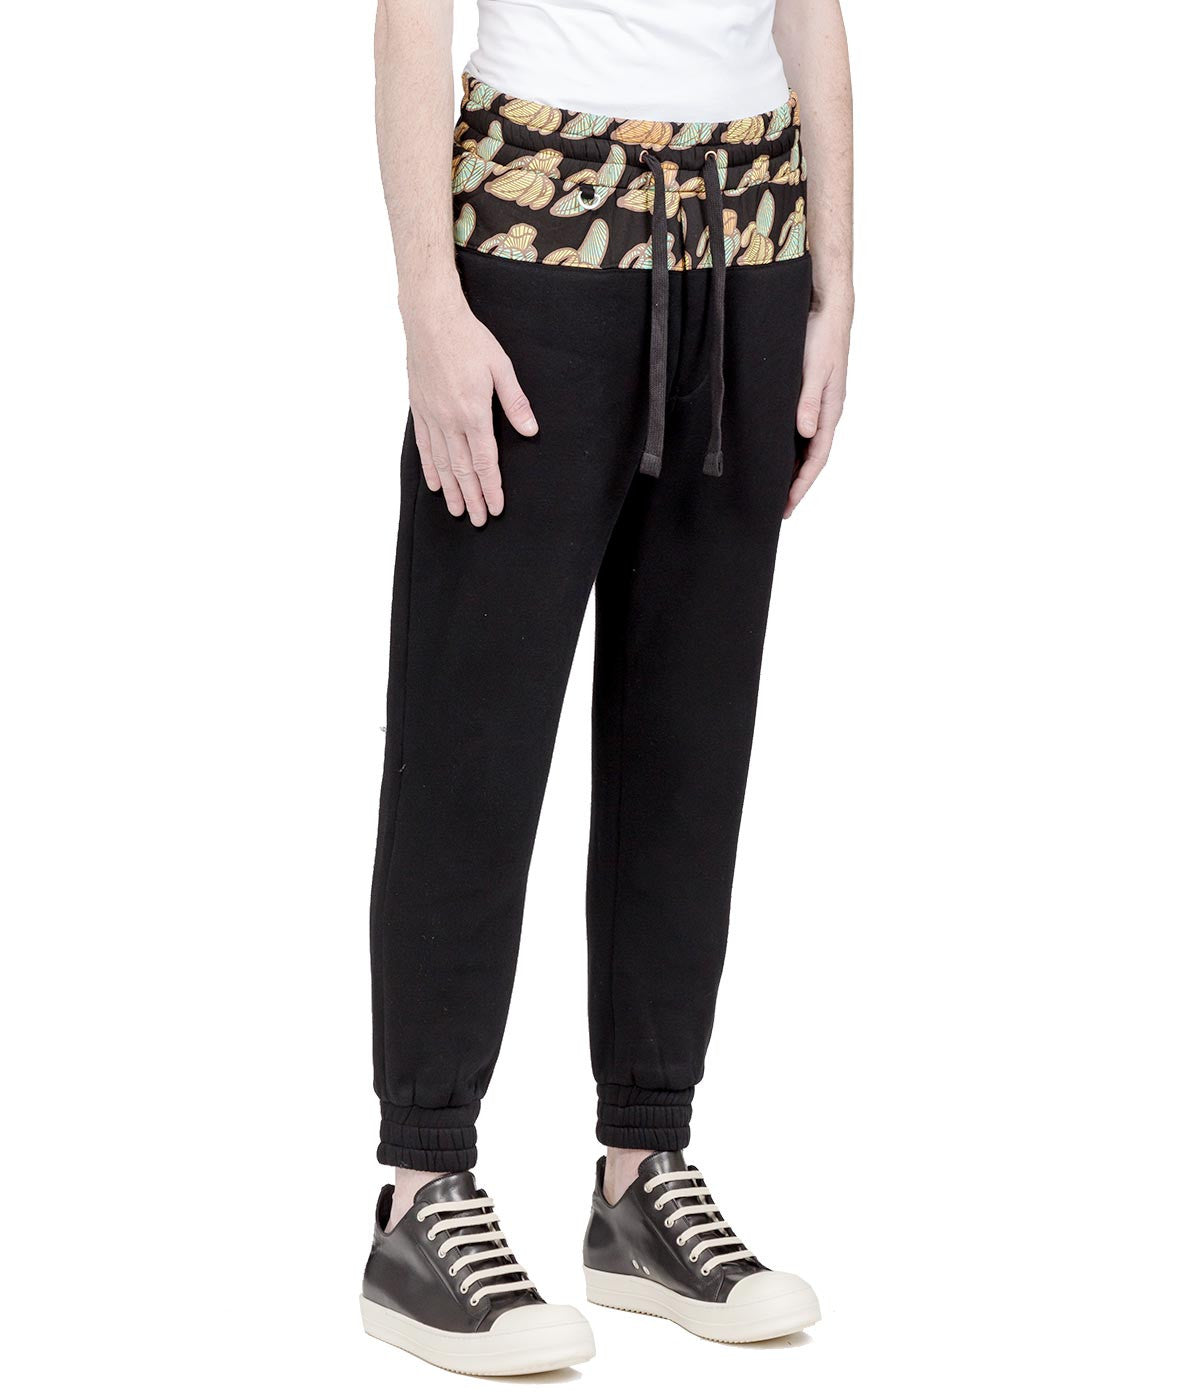 Black Sk8ting Bananas Sweatpants